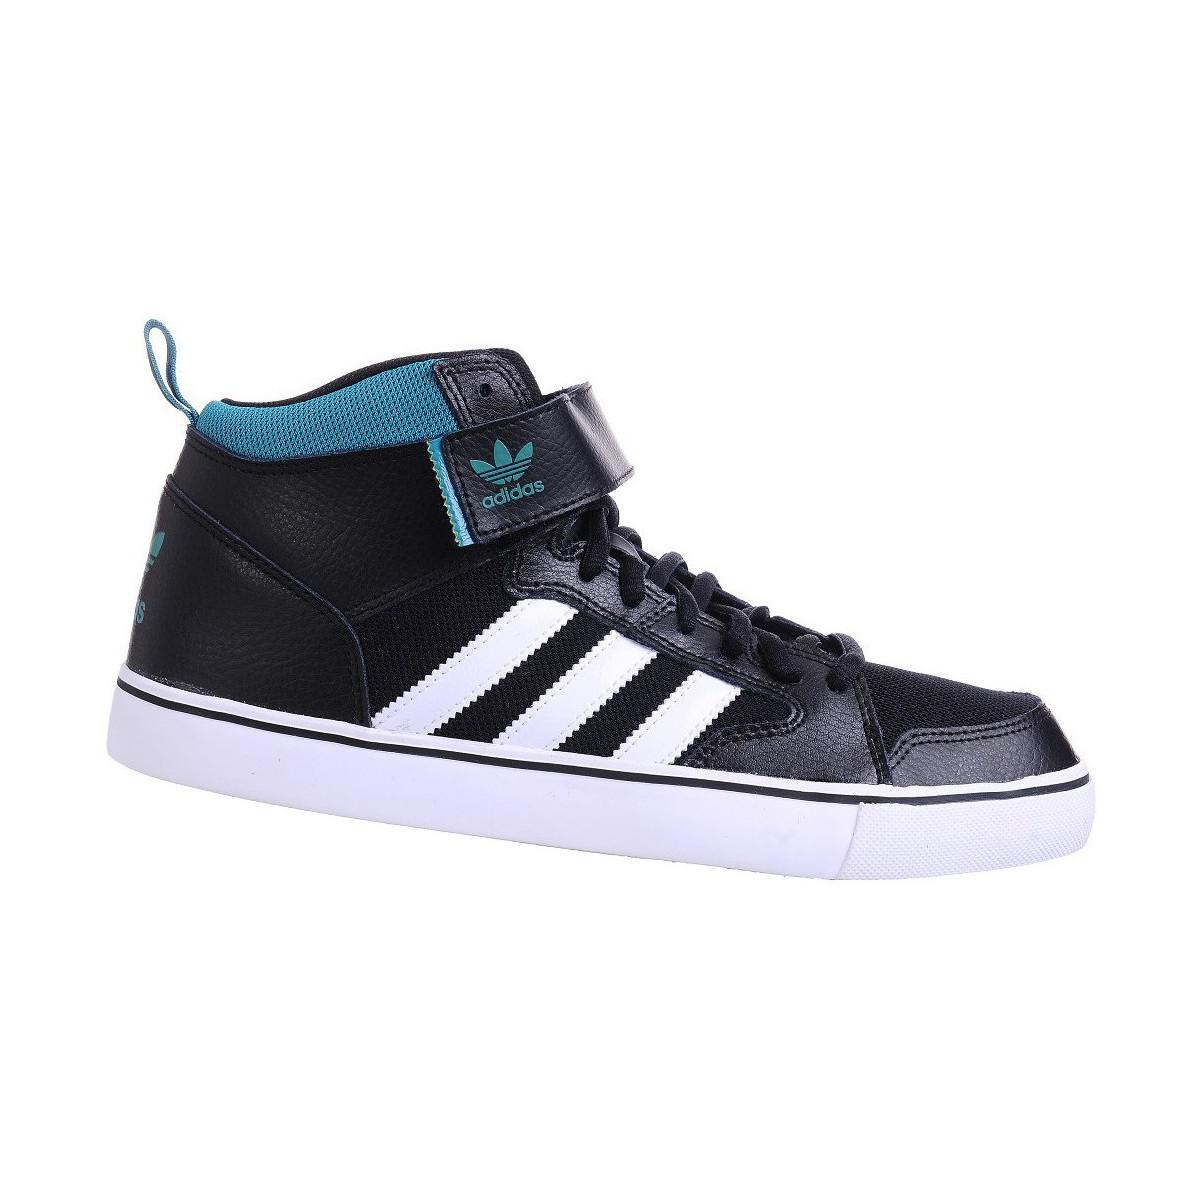 low priced 4226c 3749a Adidas Varial Mid Mens Basketball Trainers (shoes) In Green